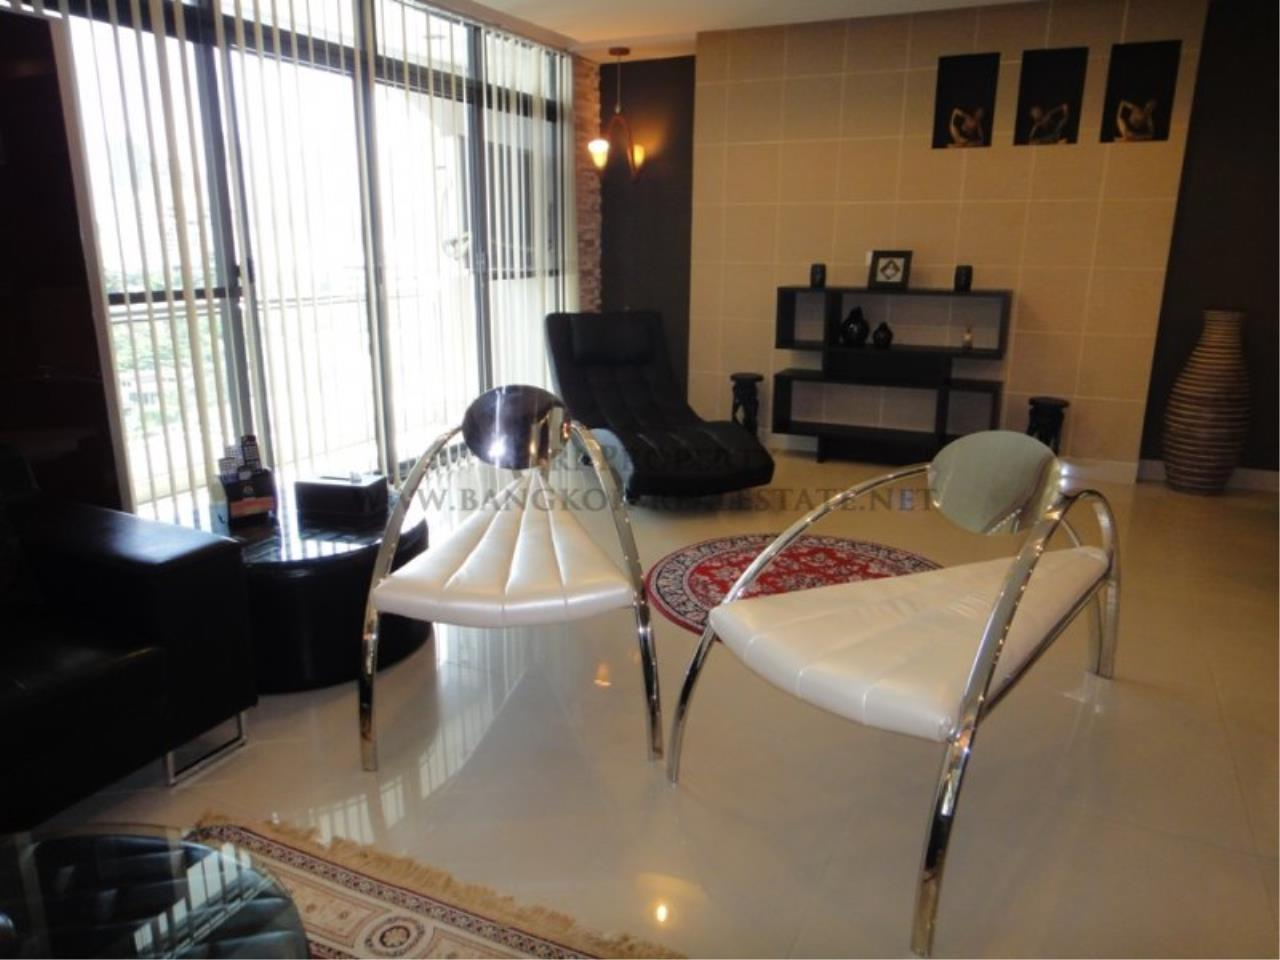 Piri Property Agency's Baan Phrom Phong - 2 Bedroom Condo for Sale - RENOVATED! 7